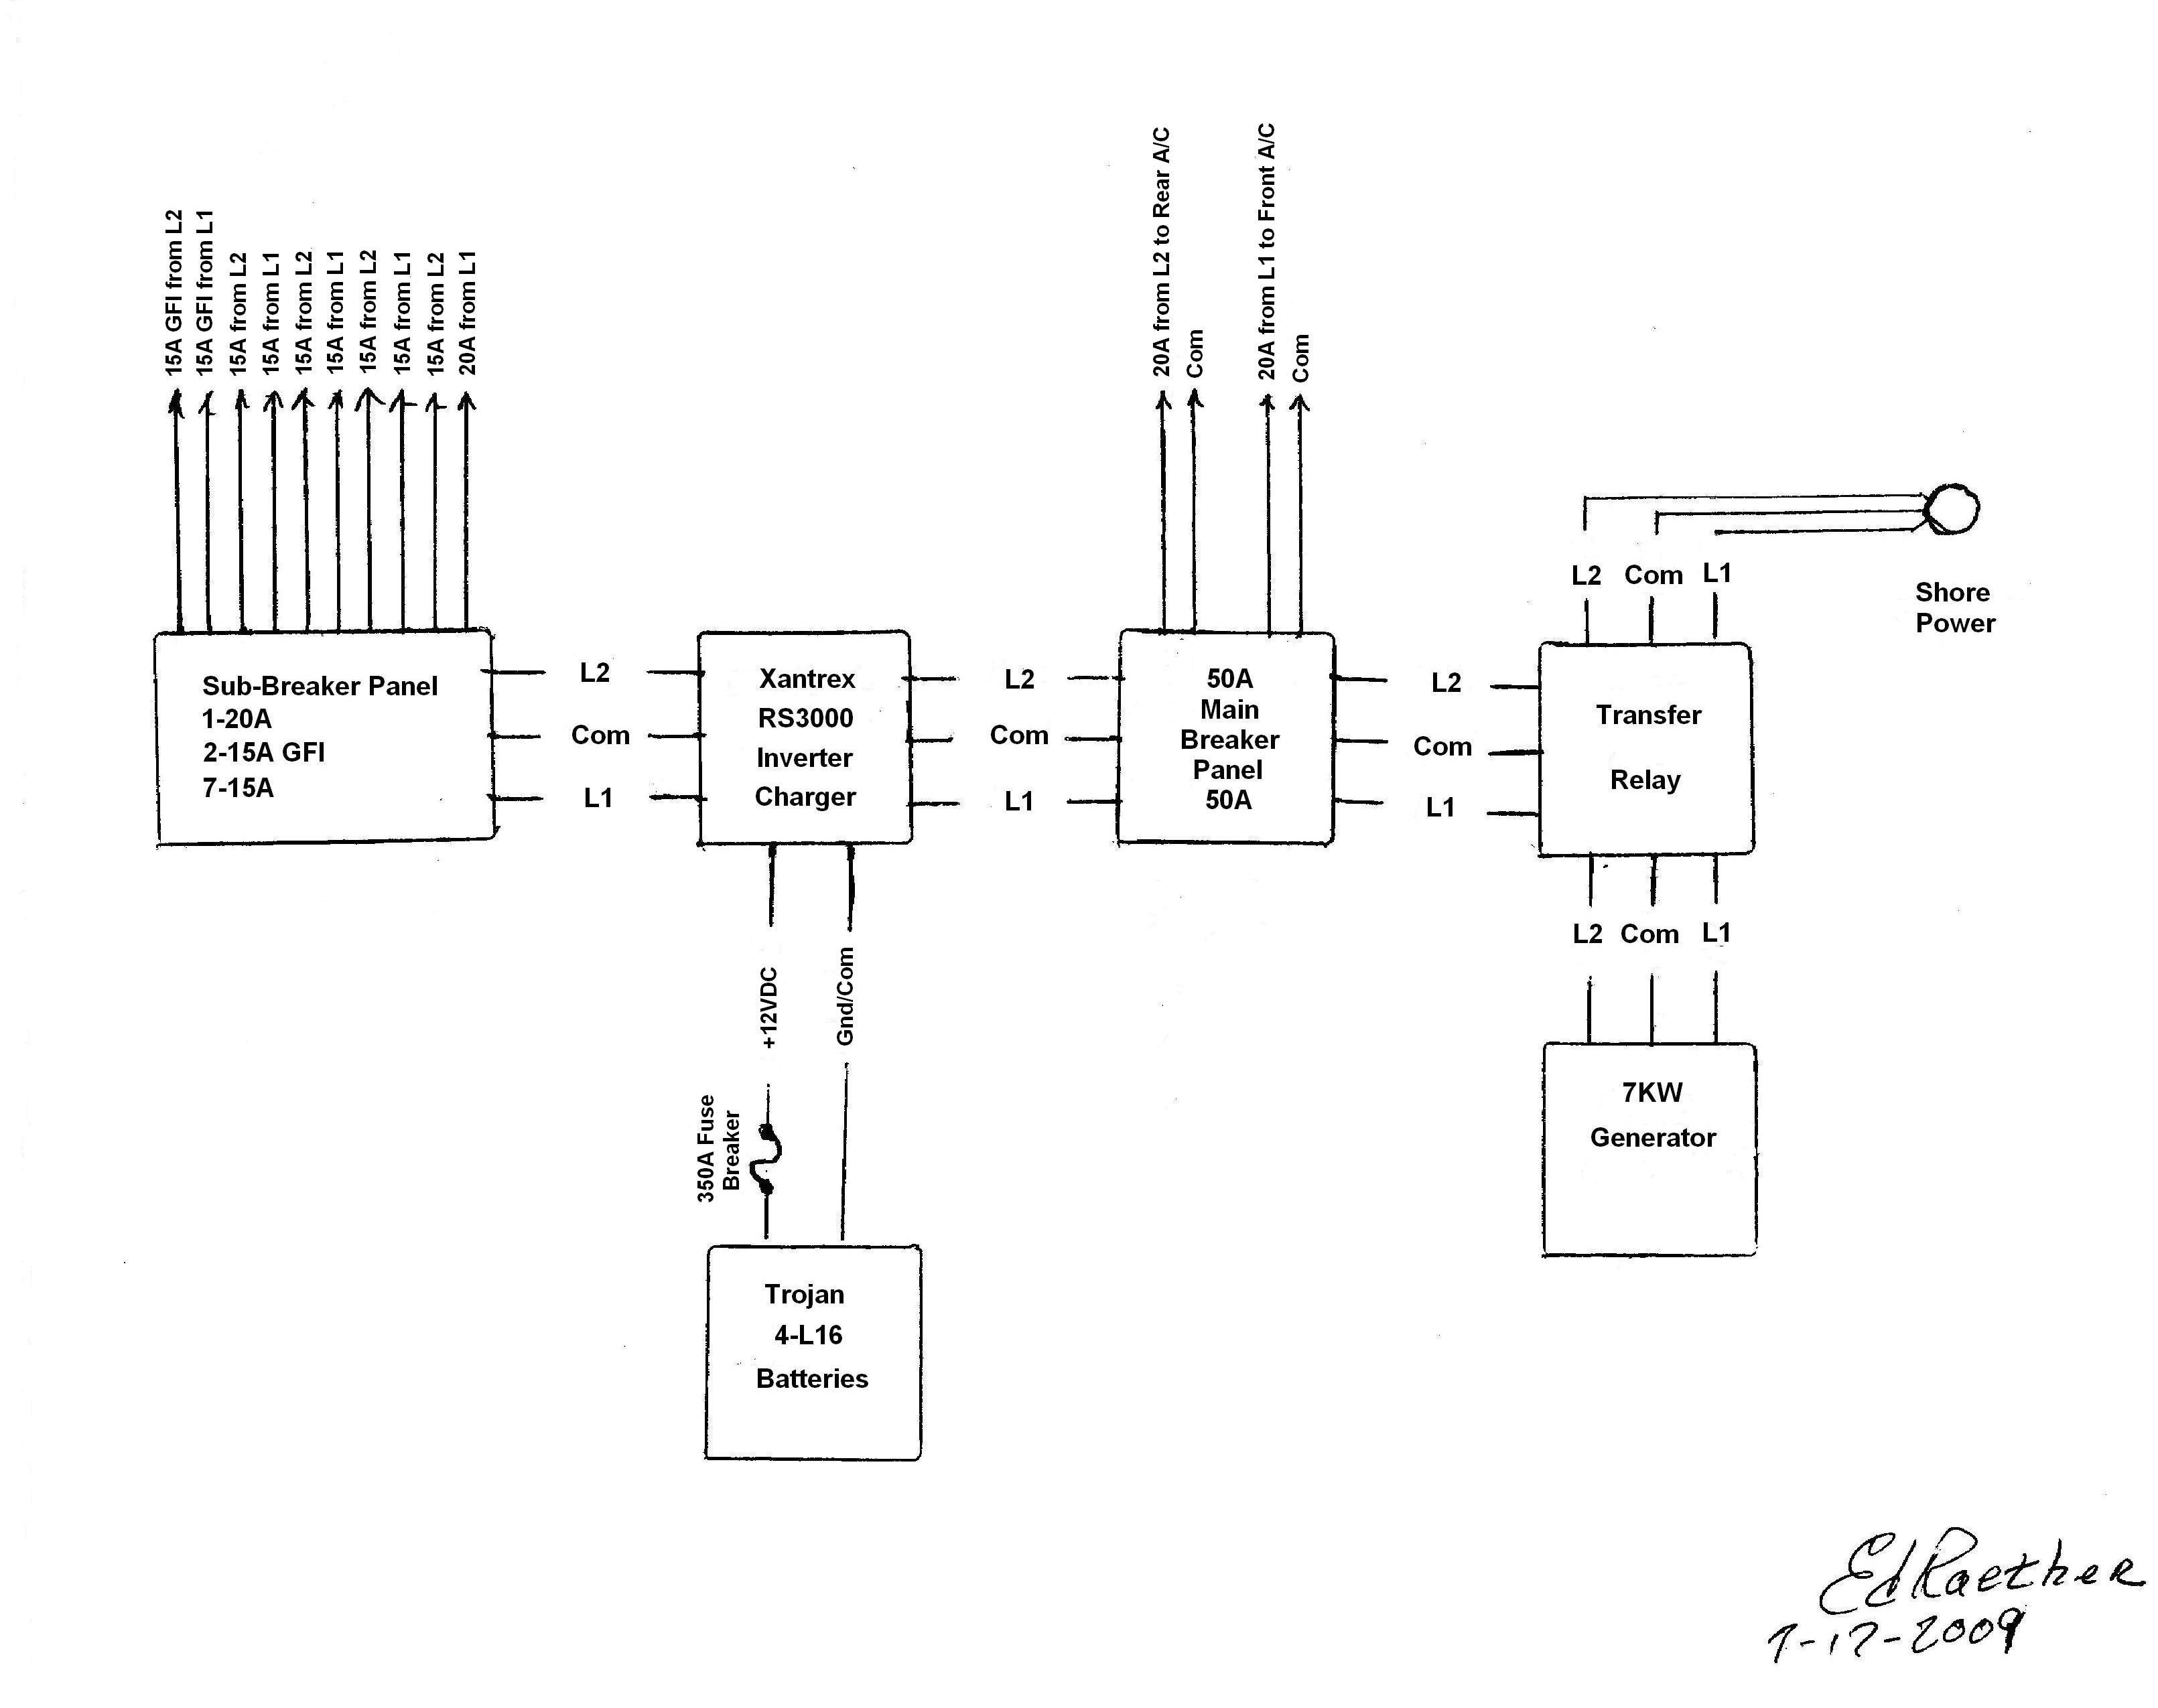 Of The Electrical System Is Powered By A Xantrex Inverter ... Xantrex Inverter Wiring Diagram on